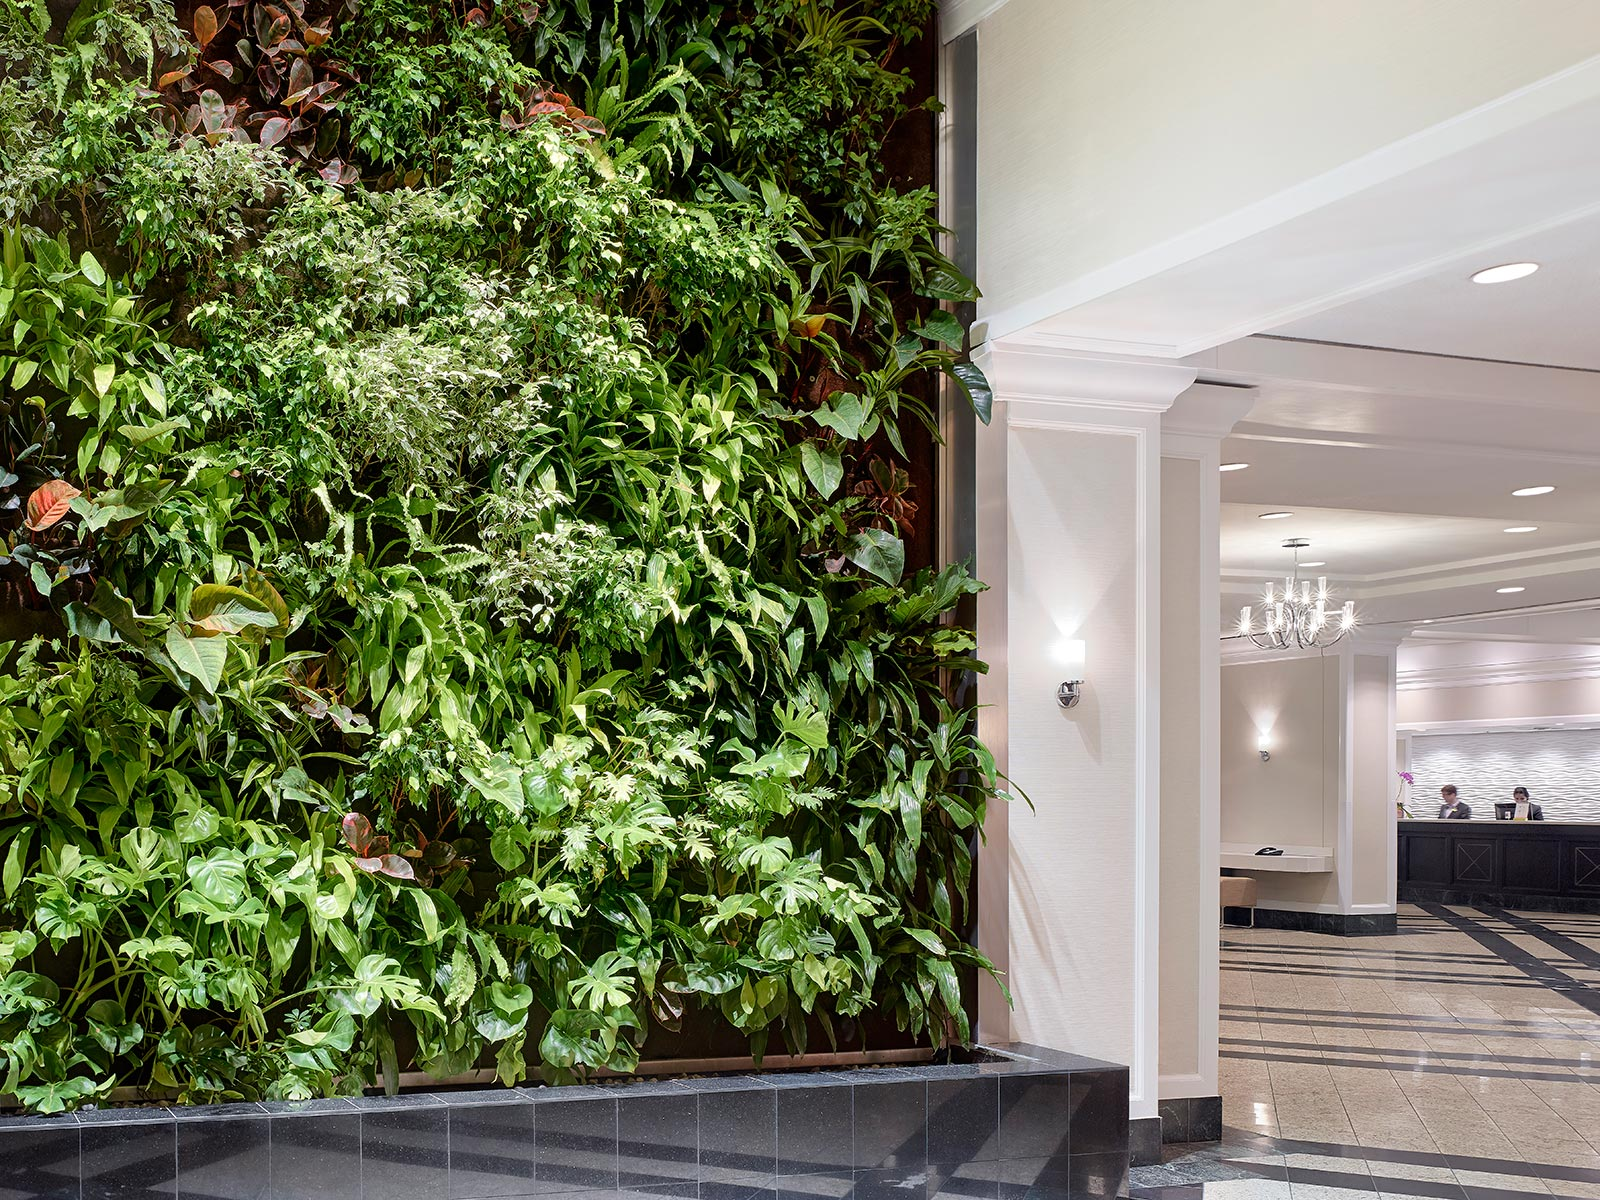 Chelsea Hotel's Green Wall